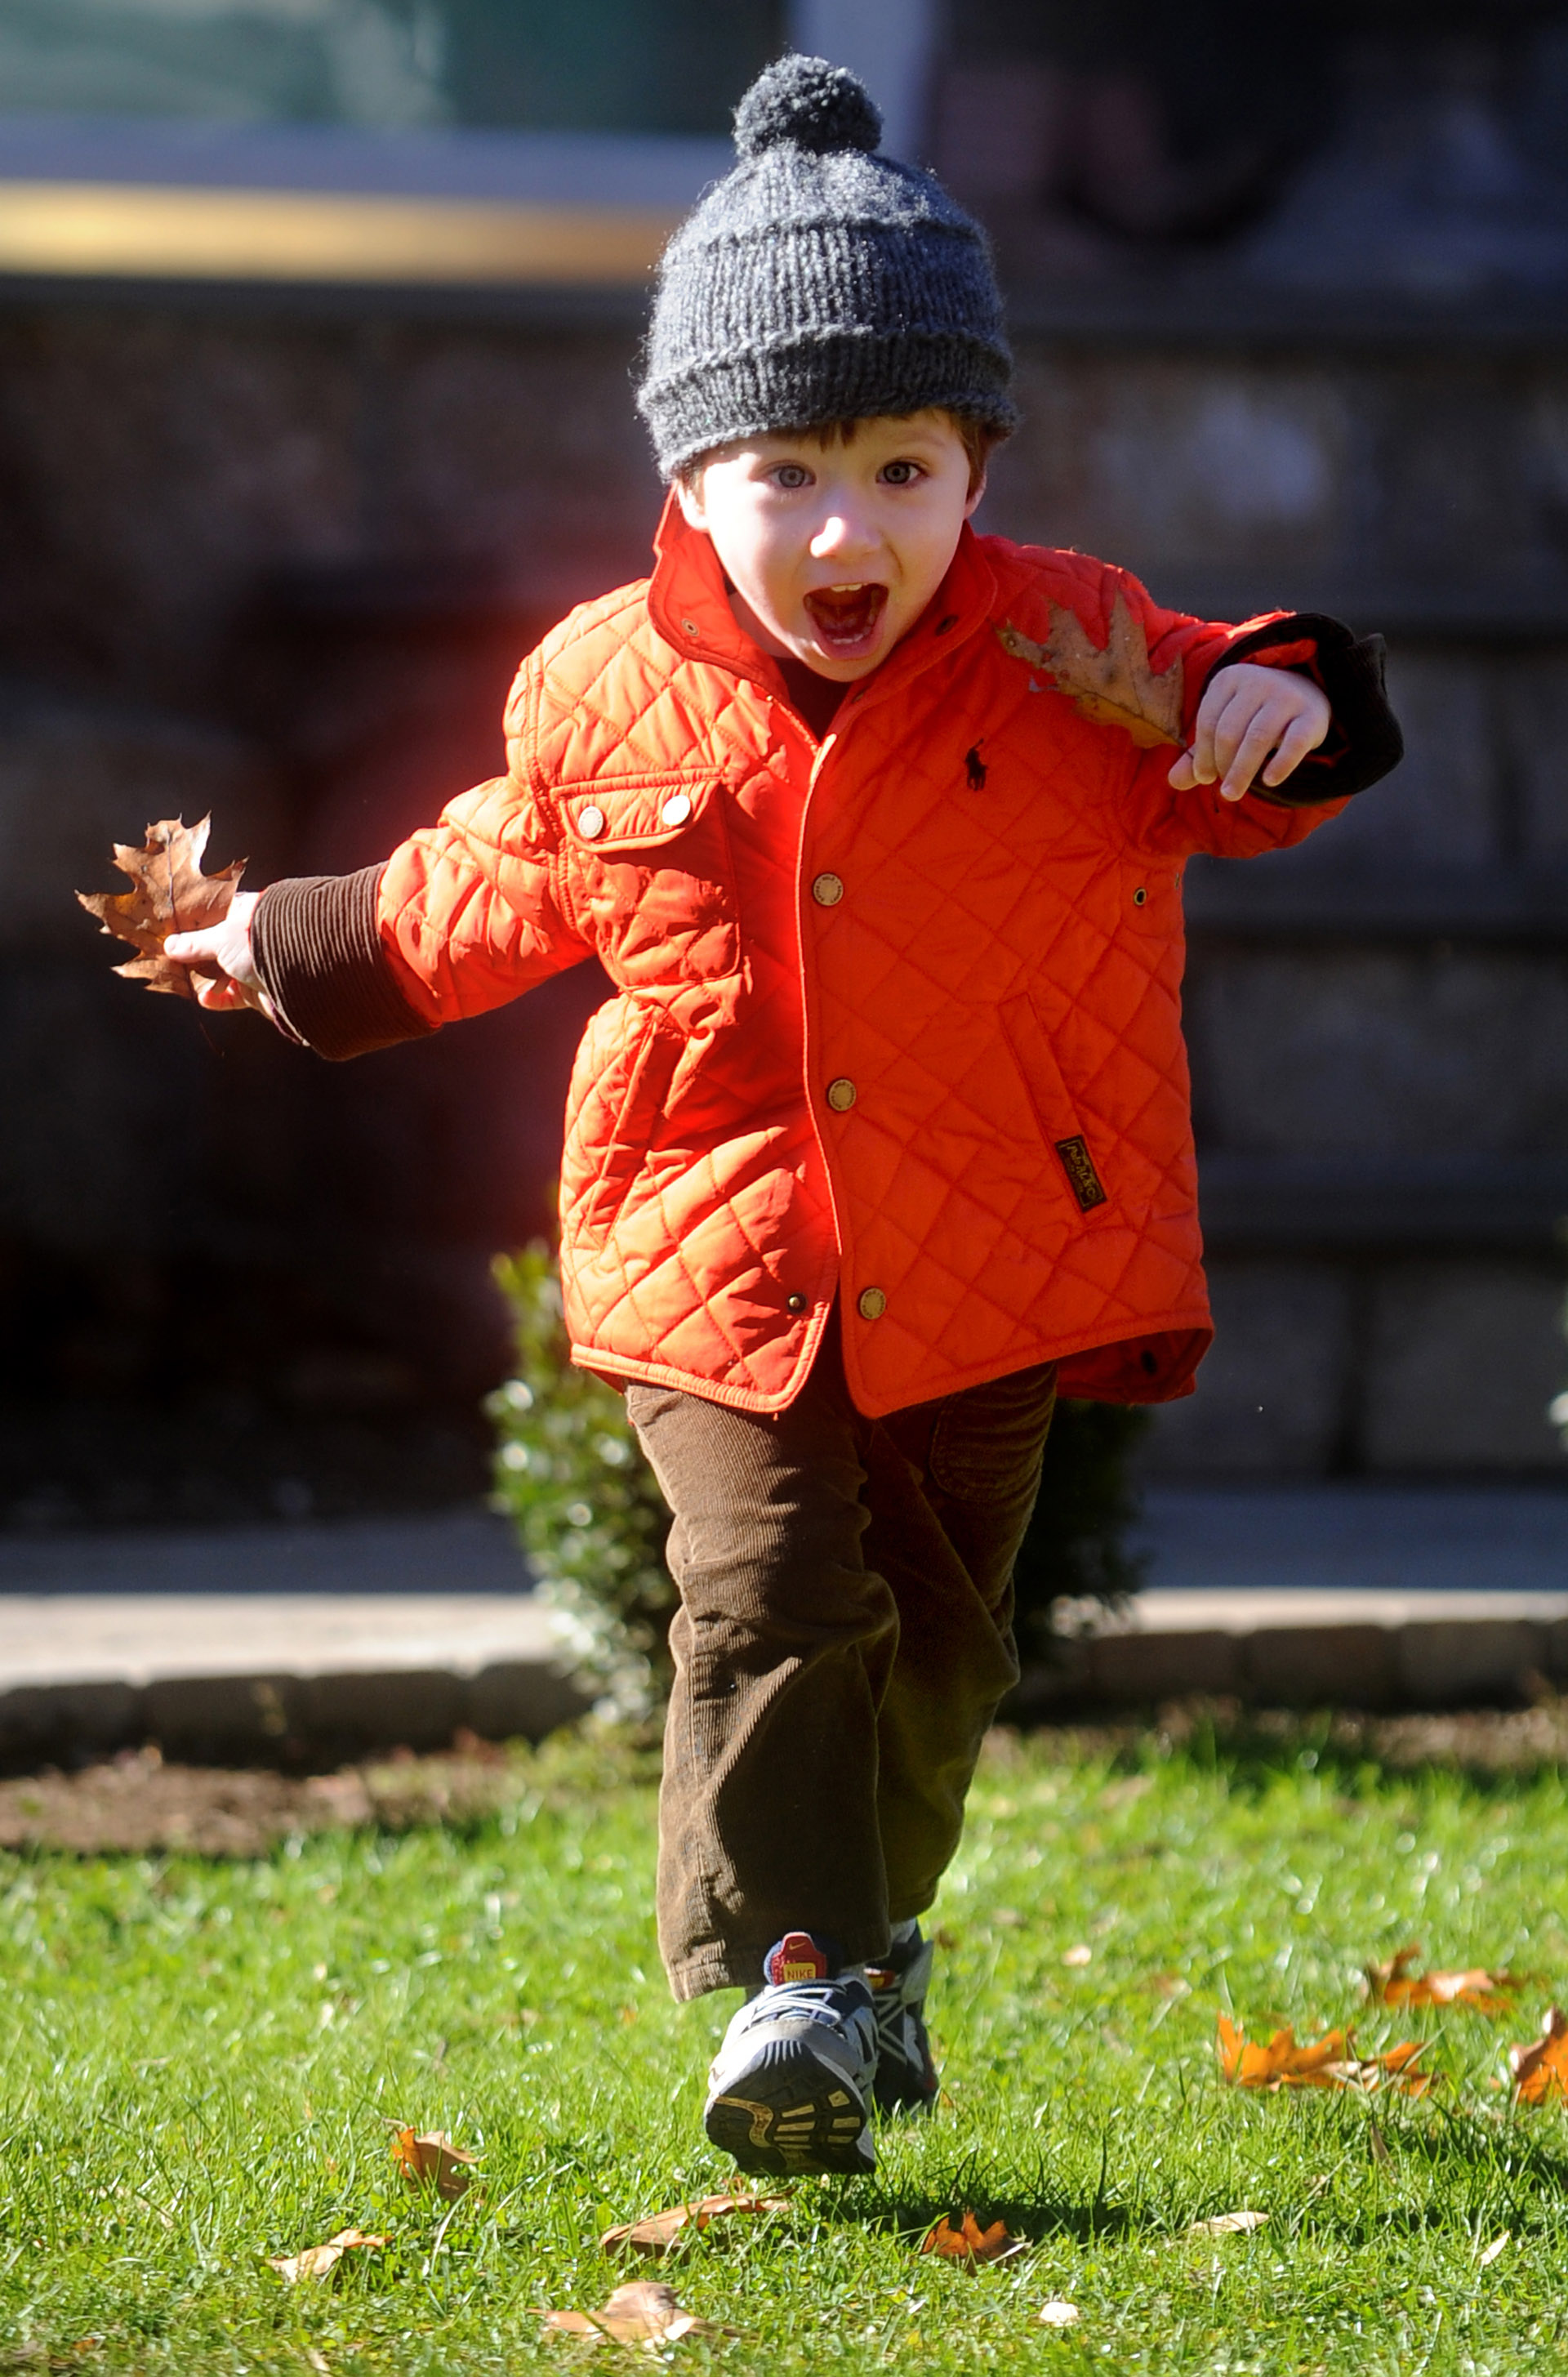 James Geaney, 3, collects leaves while on a walk with his mother, Jennifer, not pictured, on Szost Drive in Fairfield on Friday, November 12, 2010.